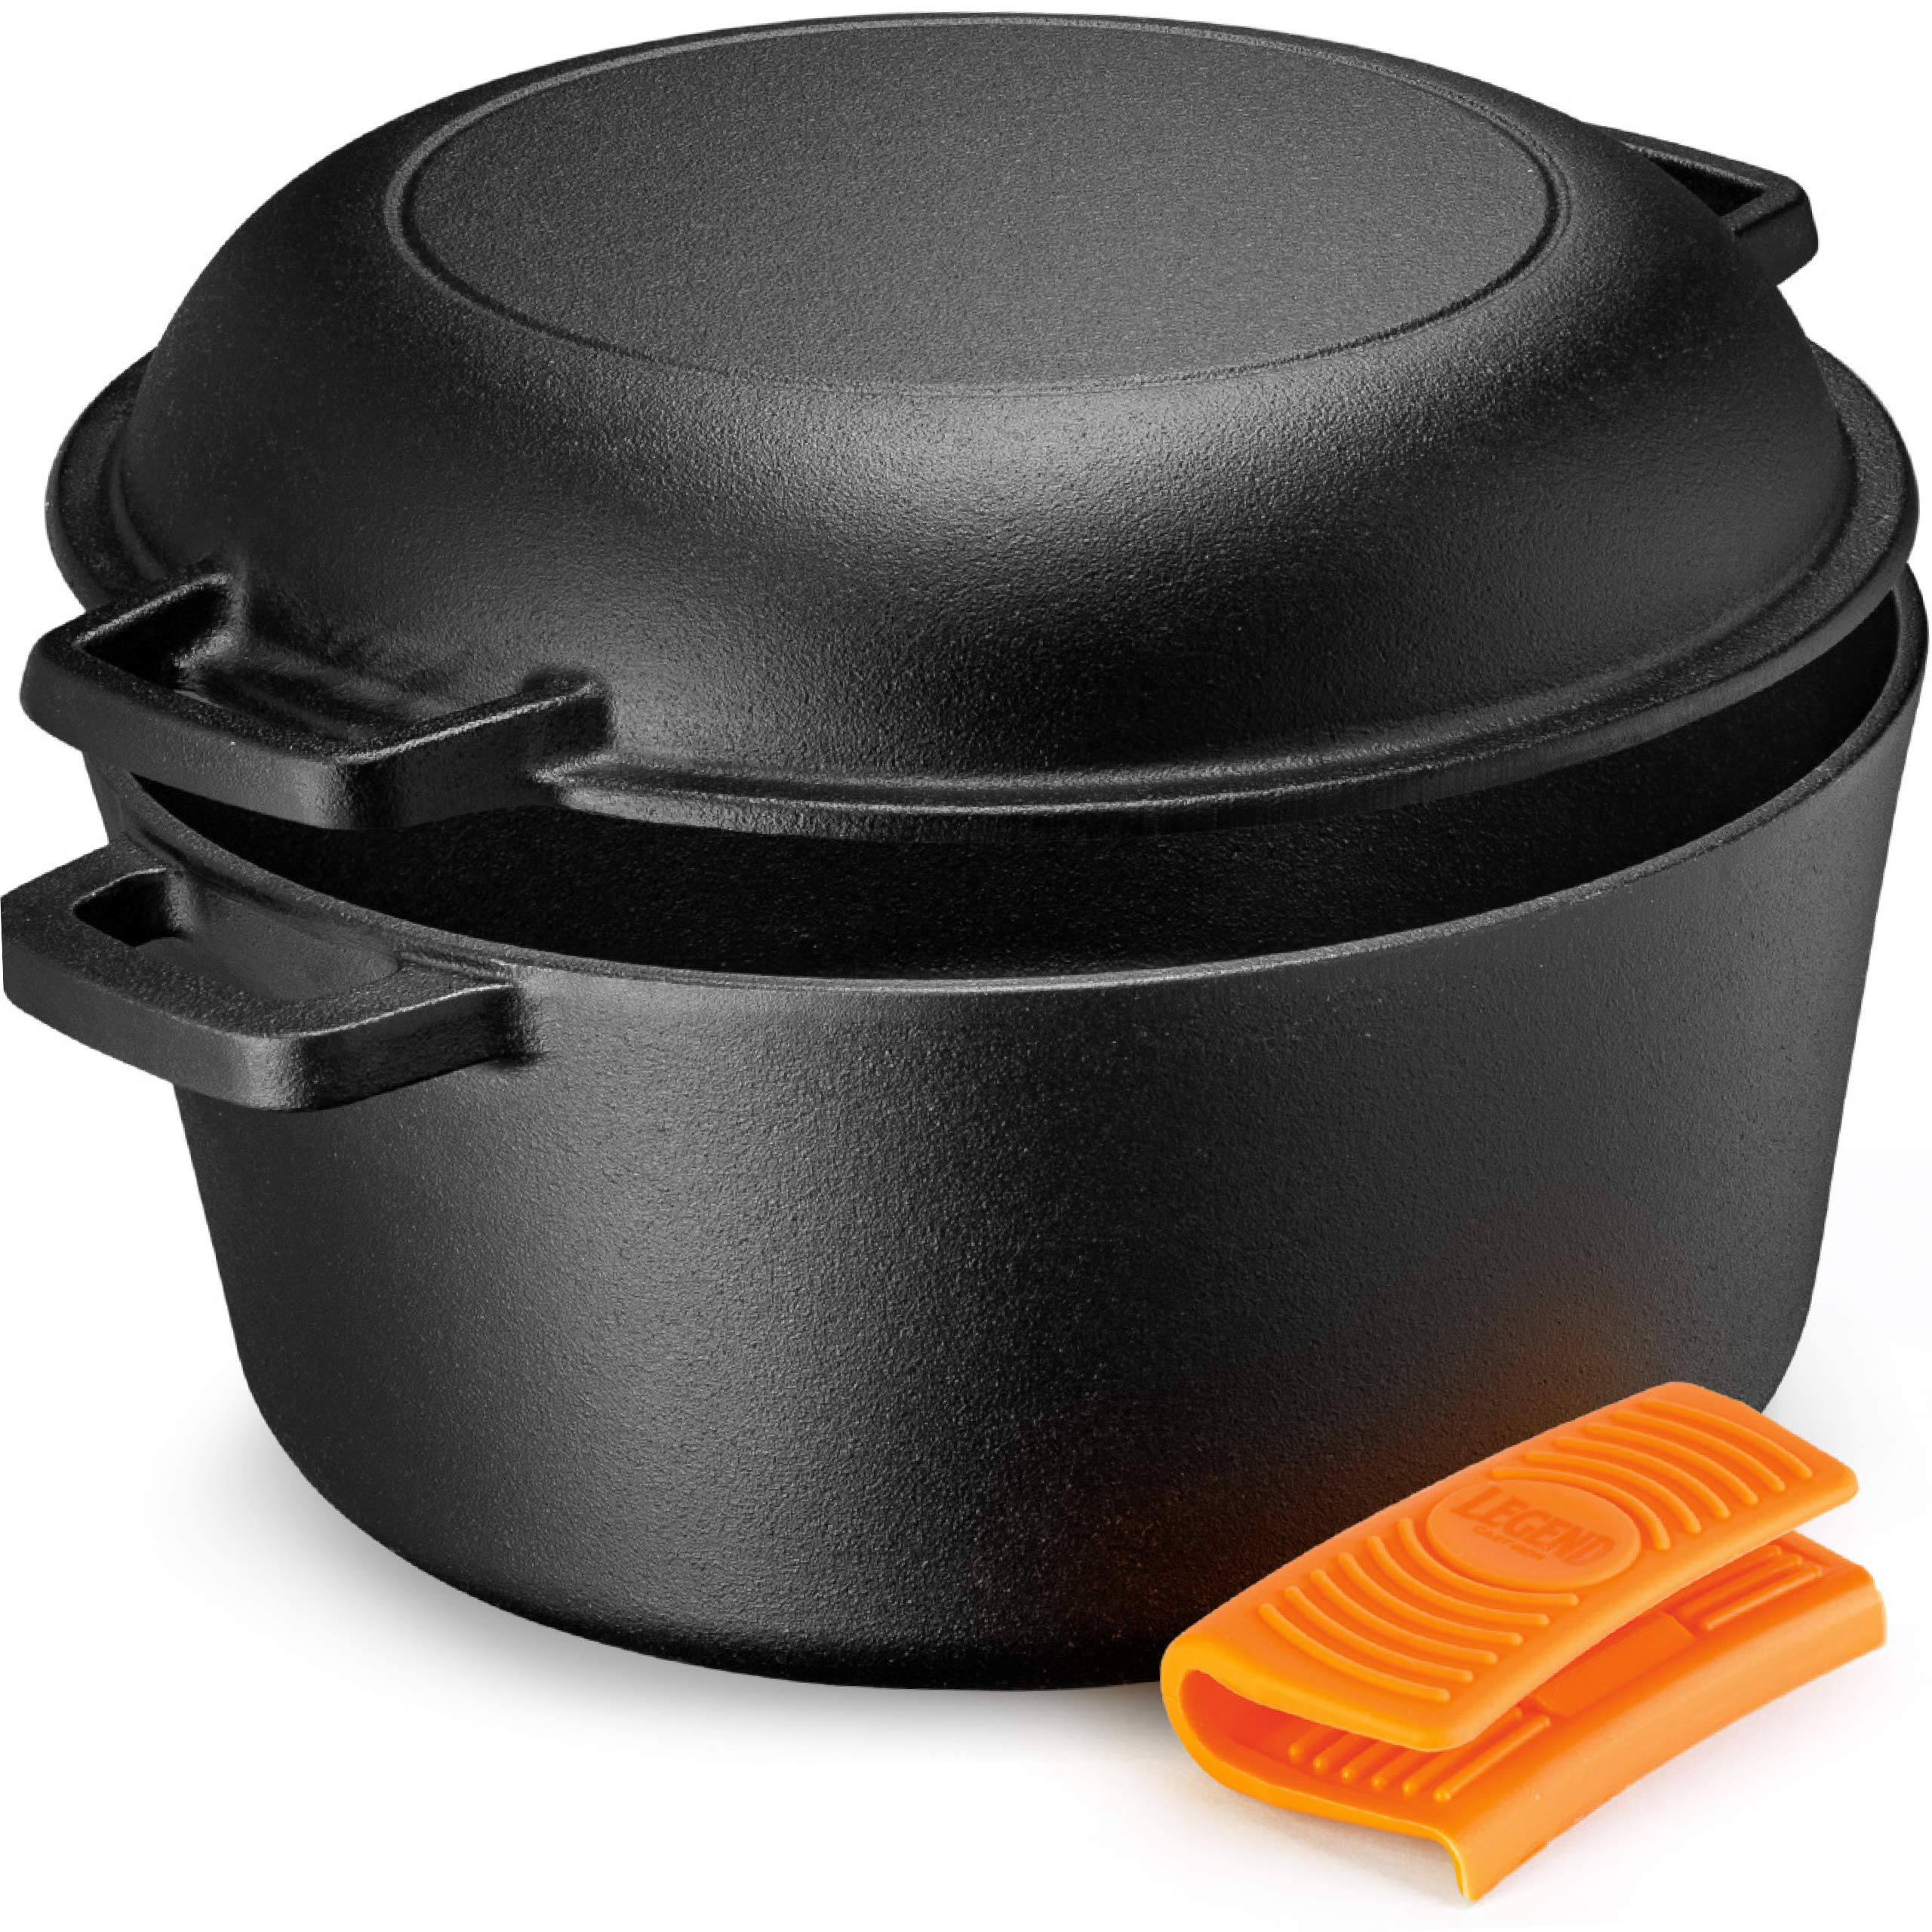 Legend Cast Iron Dutch Oven | 5 Quart Cast Iron Multi Cooker Stock Pot For Frying, Cooking, Baking & Broiling on Induction, Electric, Gas & In Oven | Lightly Pre-Seasoned & Gets Better with Each Use